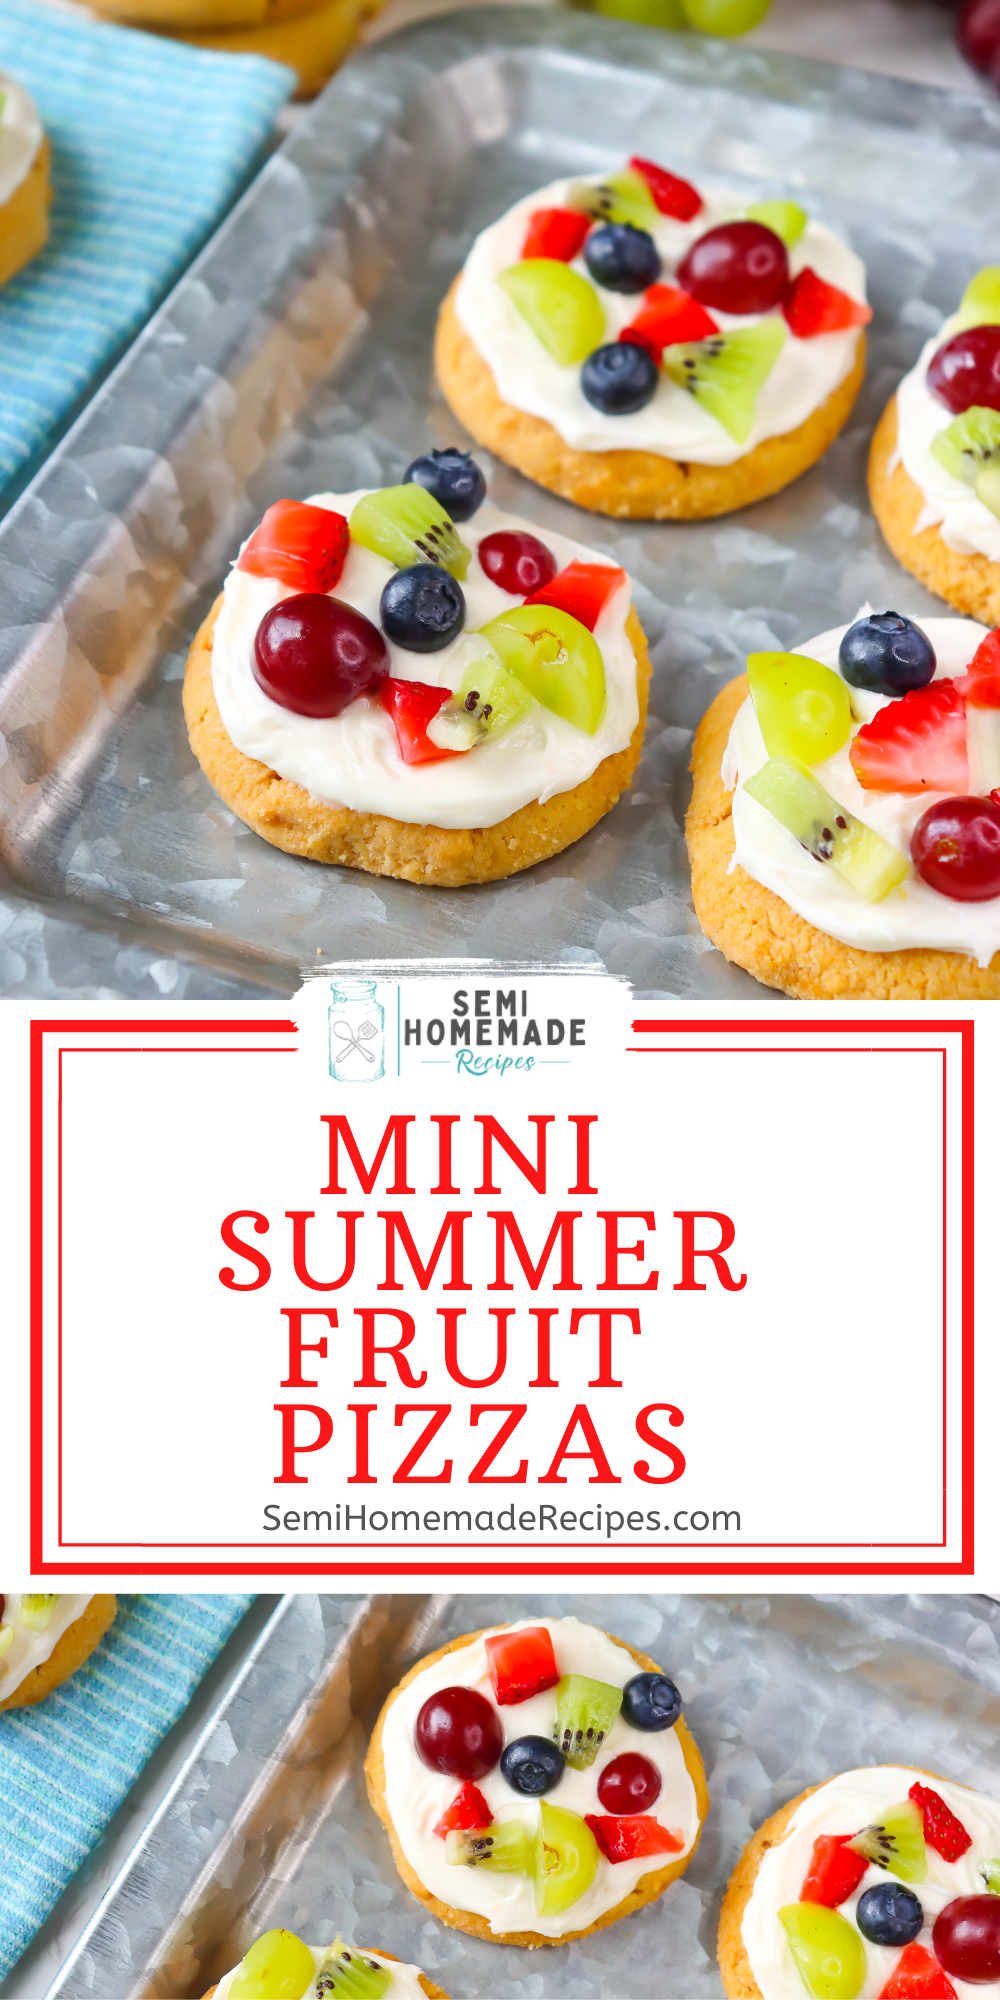 These sweet little mini fruit pizzas are the perfect semi homemade dessert for this summer! Made with sugar cookies, frosting and fresh summer fruit!